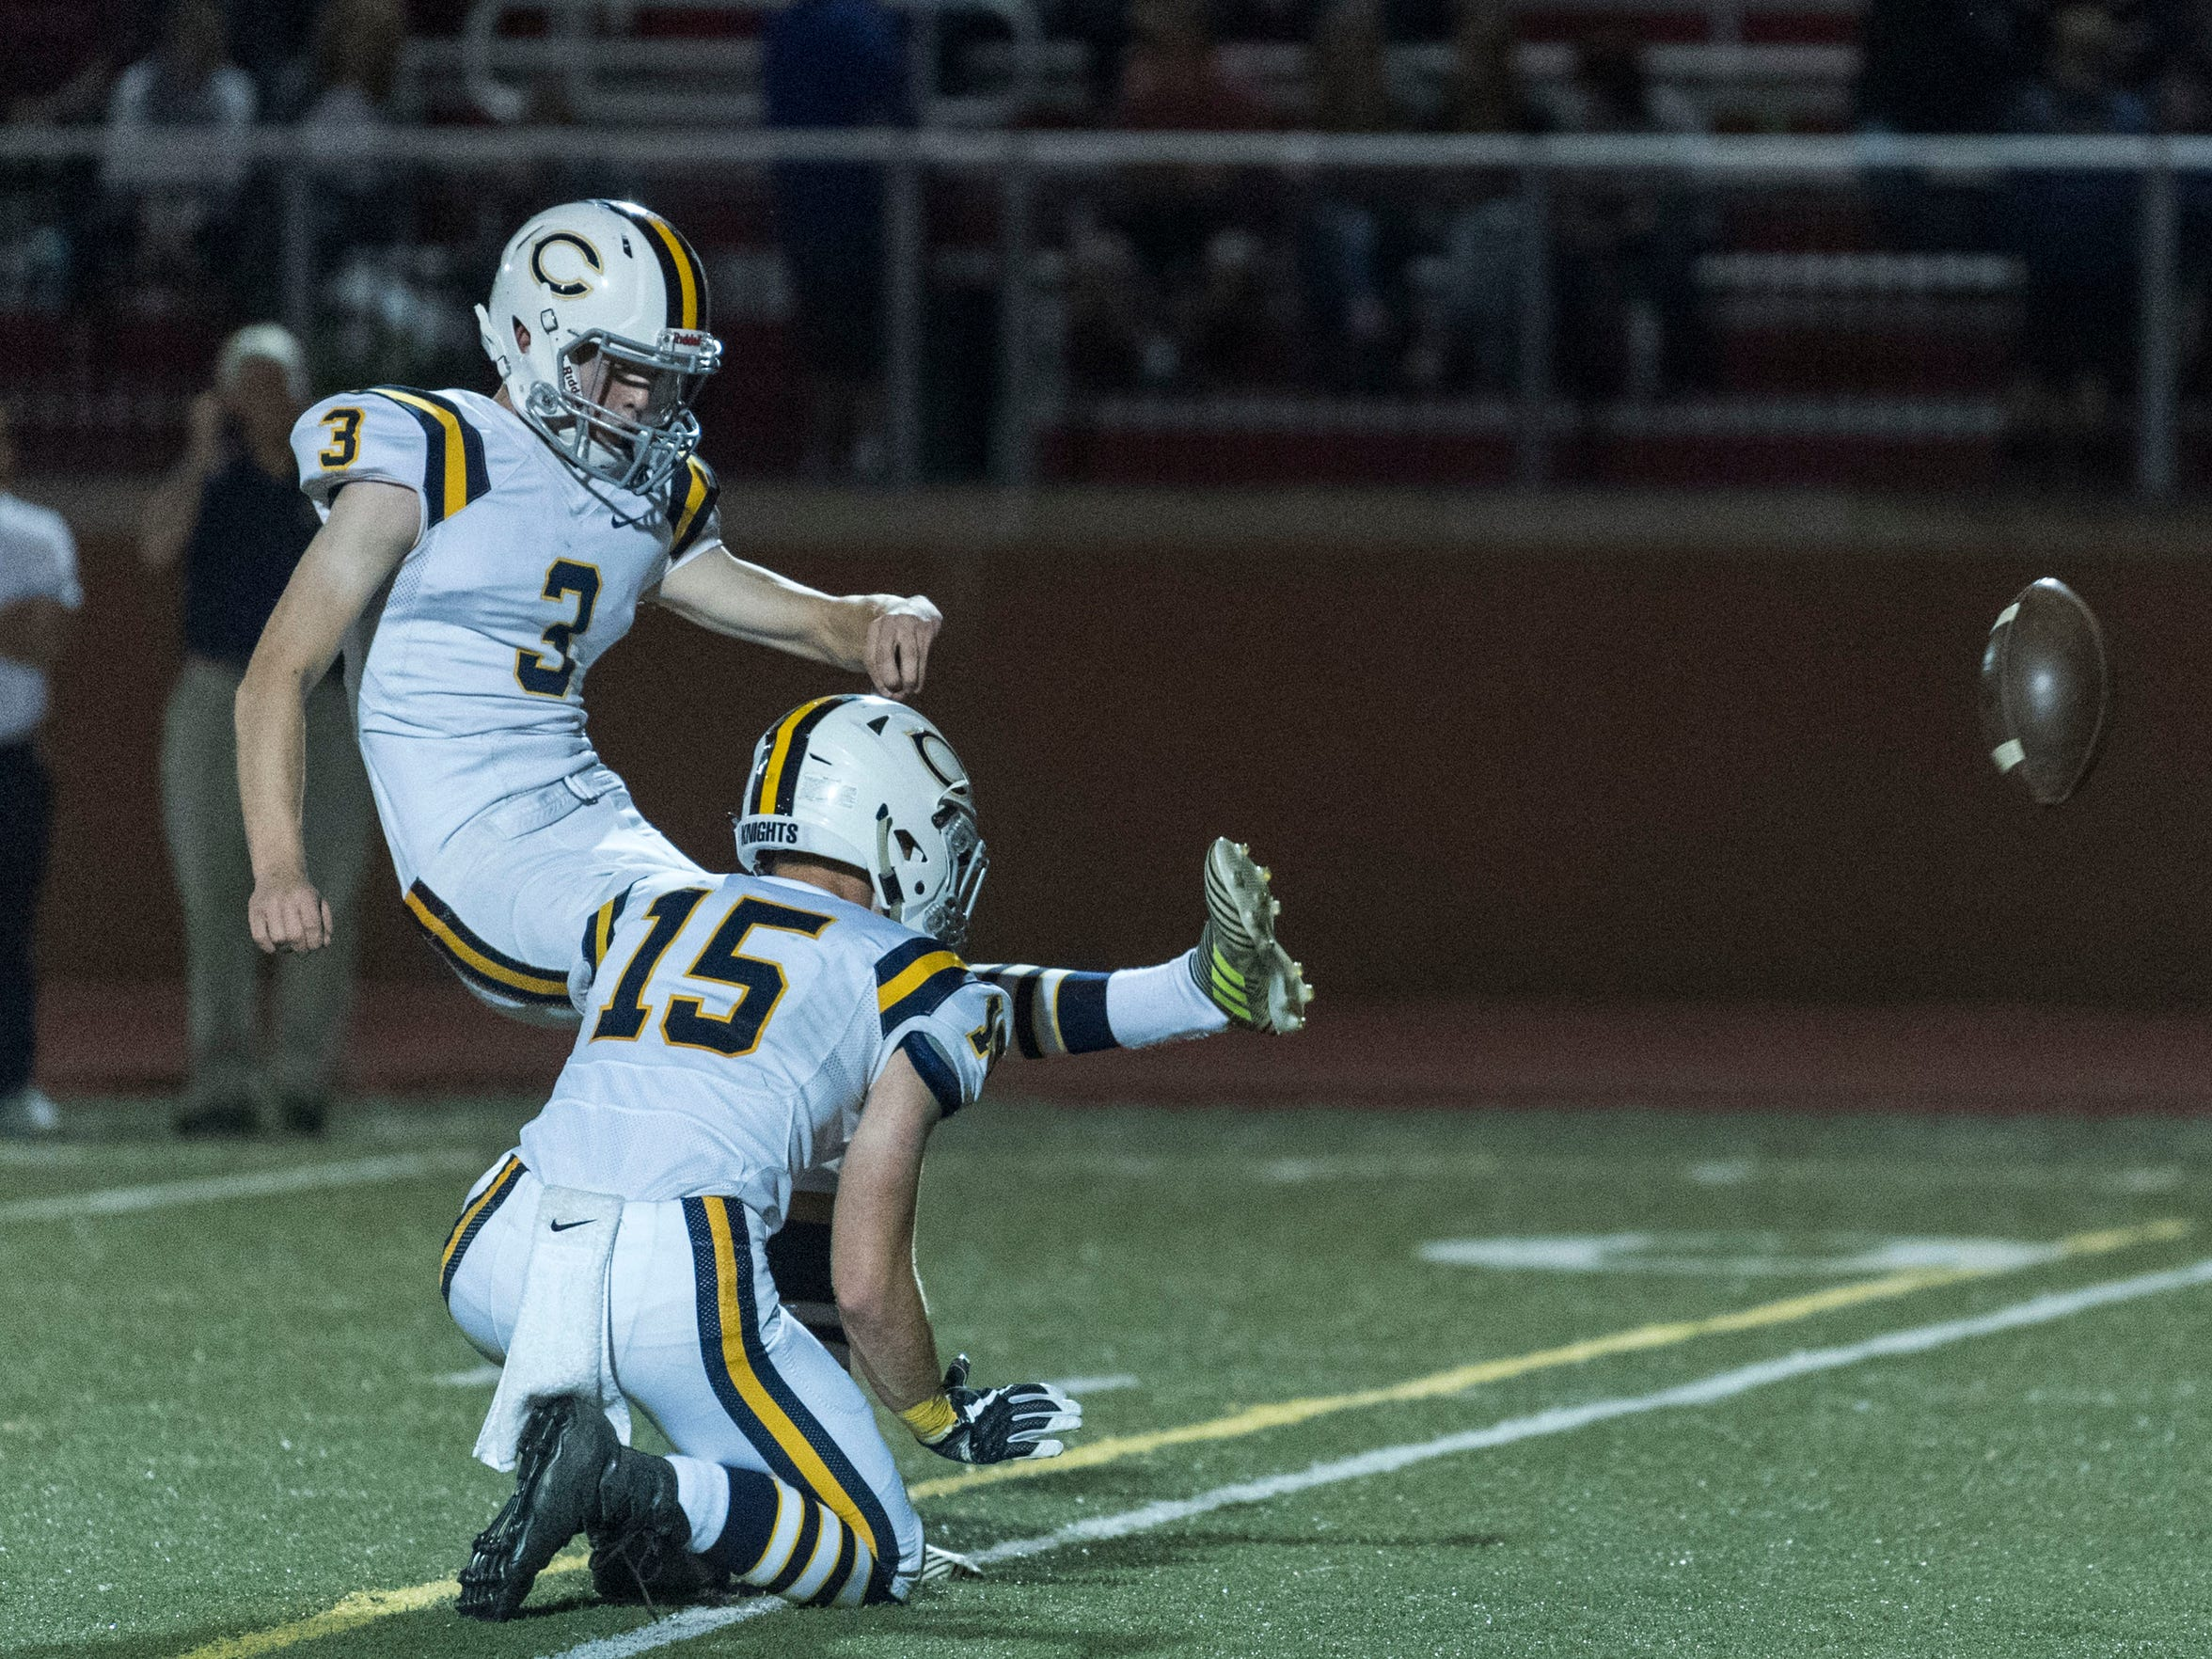 Castle's Brock Wandel (3) punts the ball for an extra point after a touchdown against the Harrison Warriors at Romain Stadium in Evansville, Ind., Friday, Sept. 29, 2017. The Knights defeated the Warriors, 51-3.